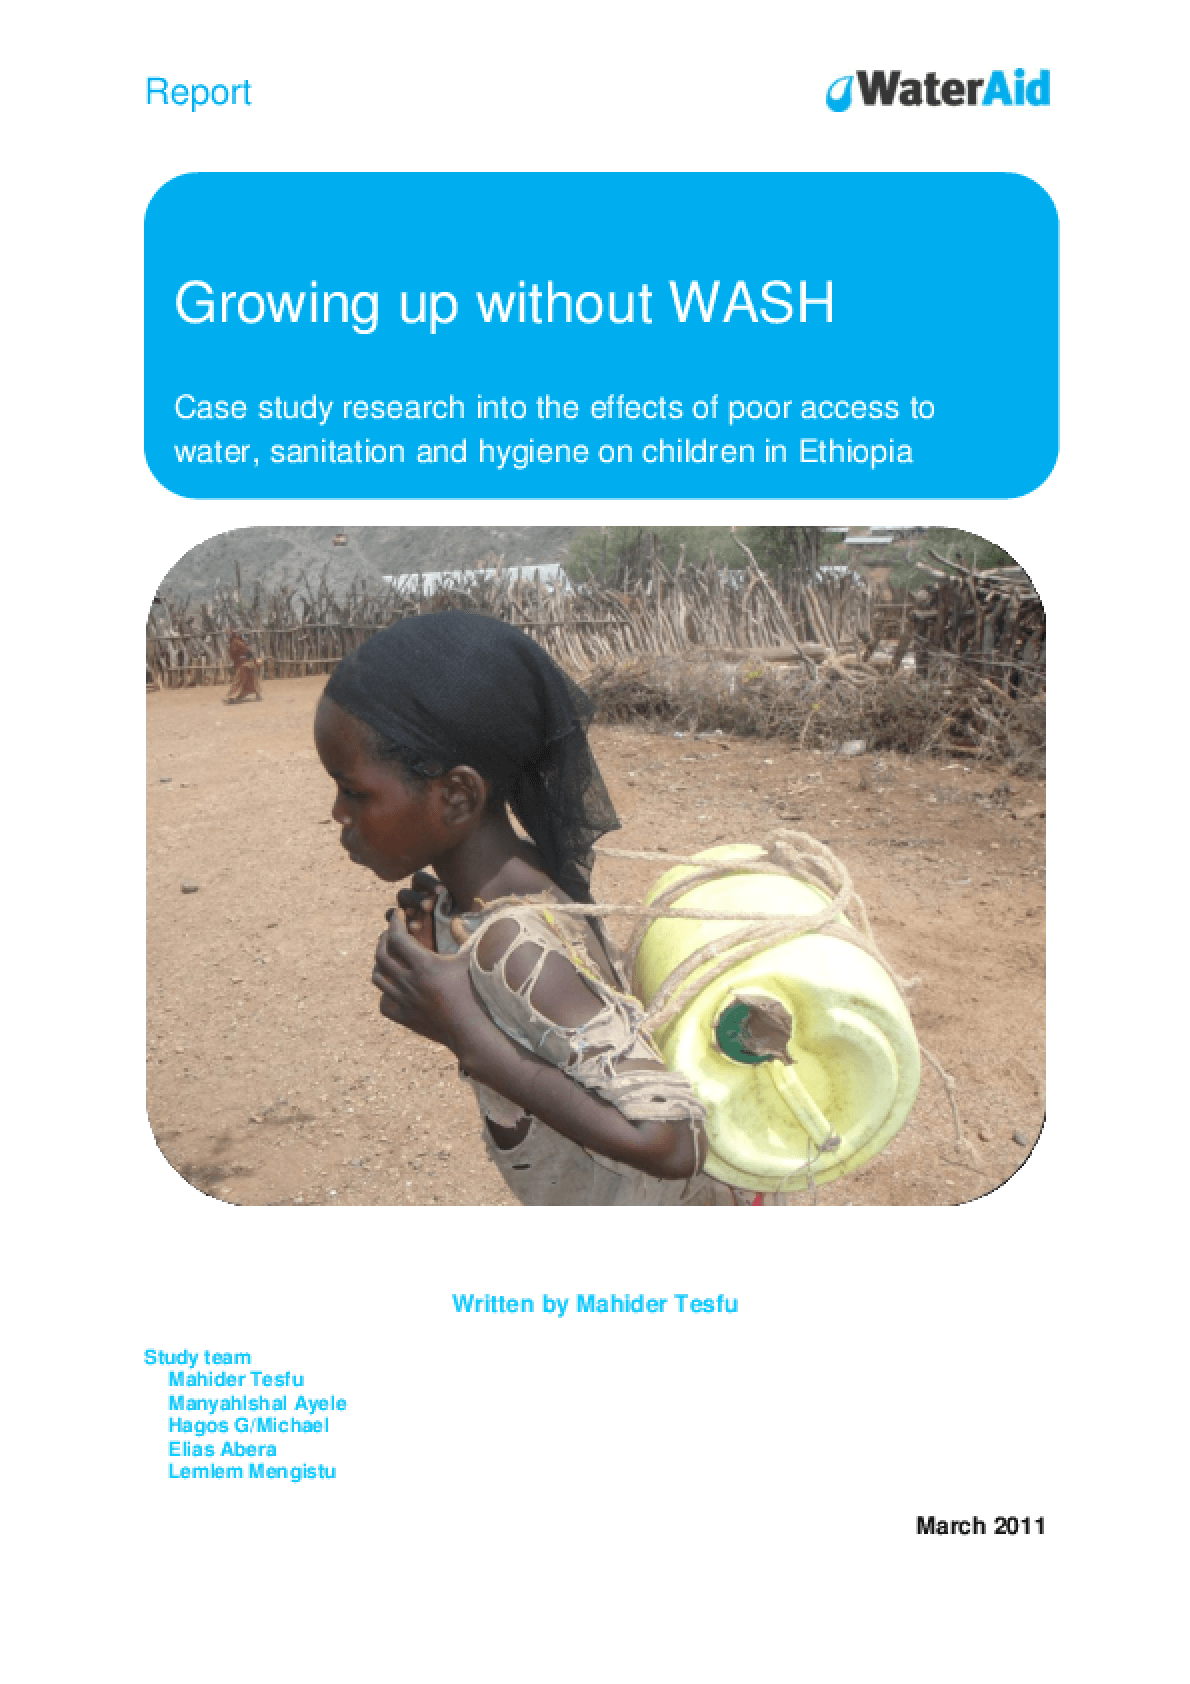 Growing up Without WASH: Case Study Research Into the Effects of Poor Access to Water, Sanitation, and Hygiene on Children in Ethiopia